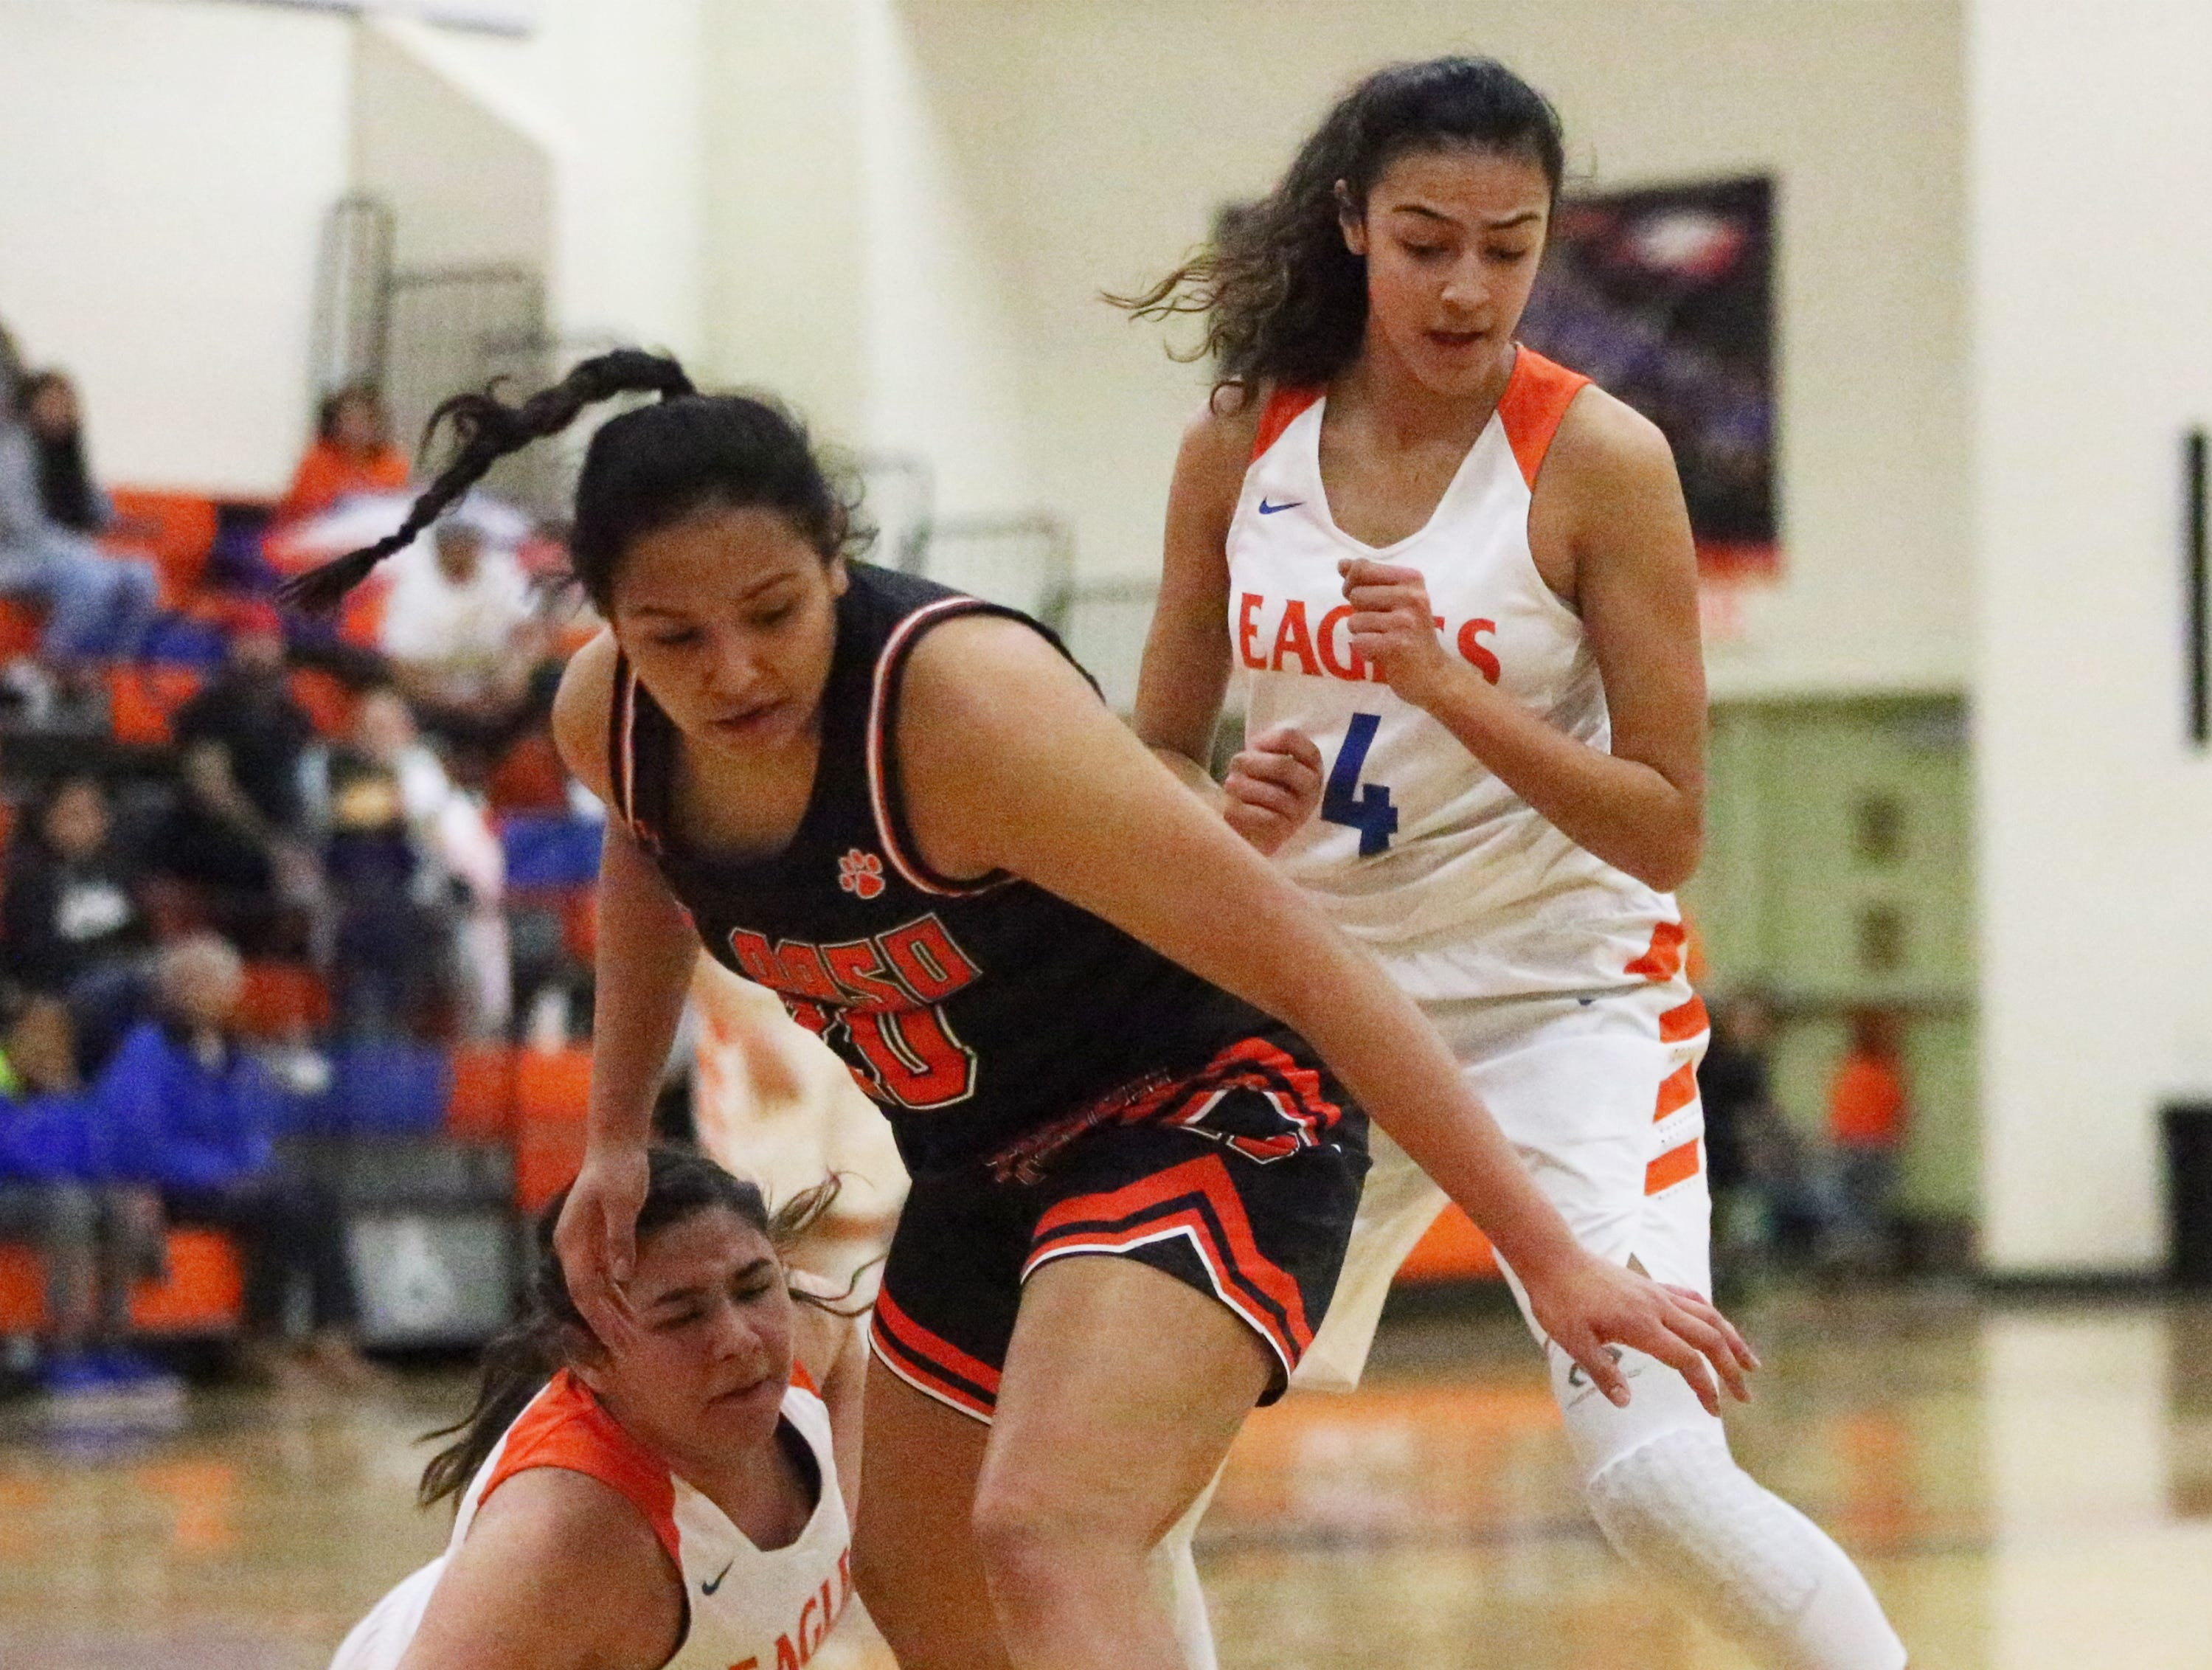 Mia Hernandez, center, of El Paso High goes after a loose ball against Canutillo Tuesday night at Canutillo.